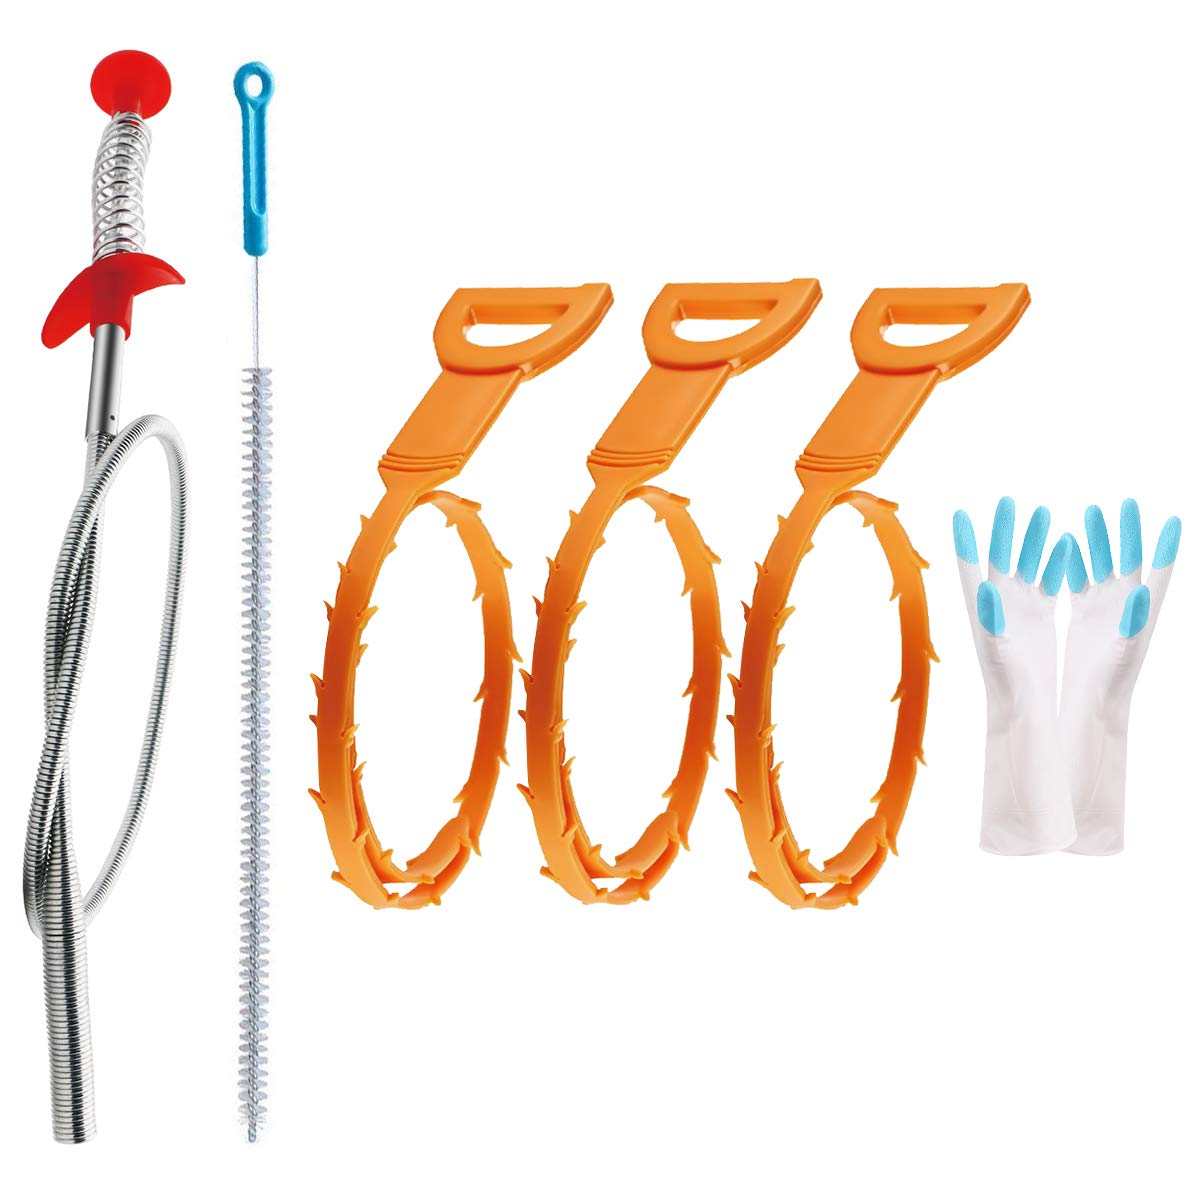 Omont Drain Clog Remover Drain Hair Remover Tool Kit,3 Pack 19.7 Inch Drain Auger 1 Pack 24 Inch Drain Relief 1 Pack 27.5 Inch Drain Cleanning Brush 1 Pair Housework Gloves